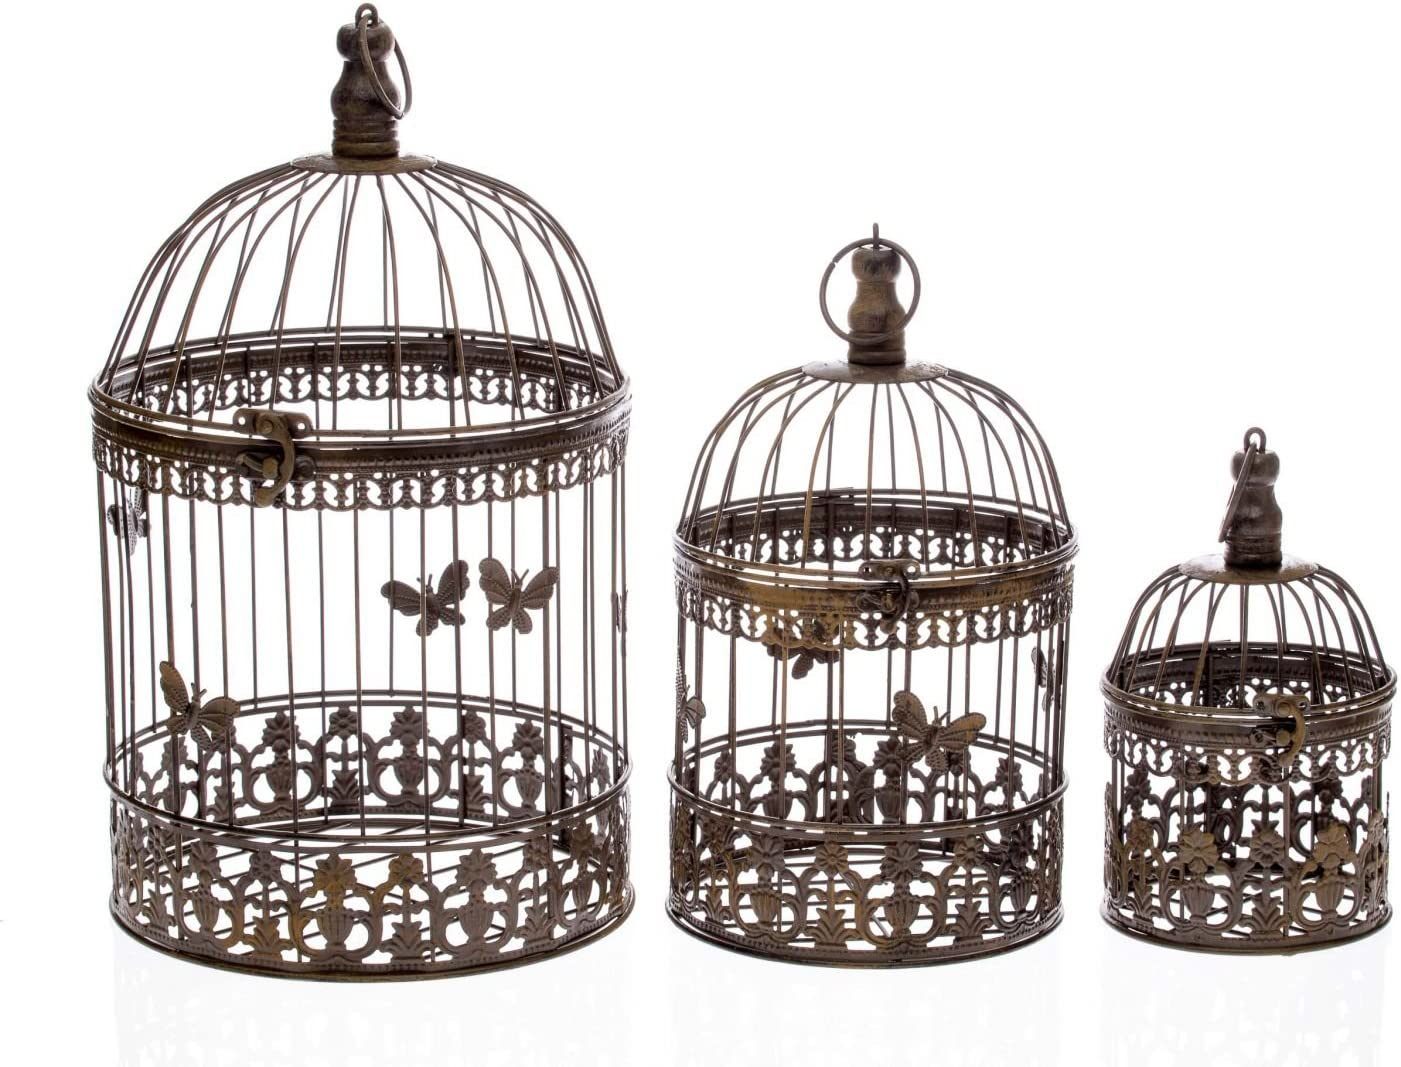 aubaho Decorative bird cage wrought iron brown set of 3 vintage style